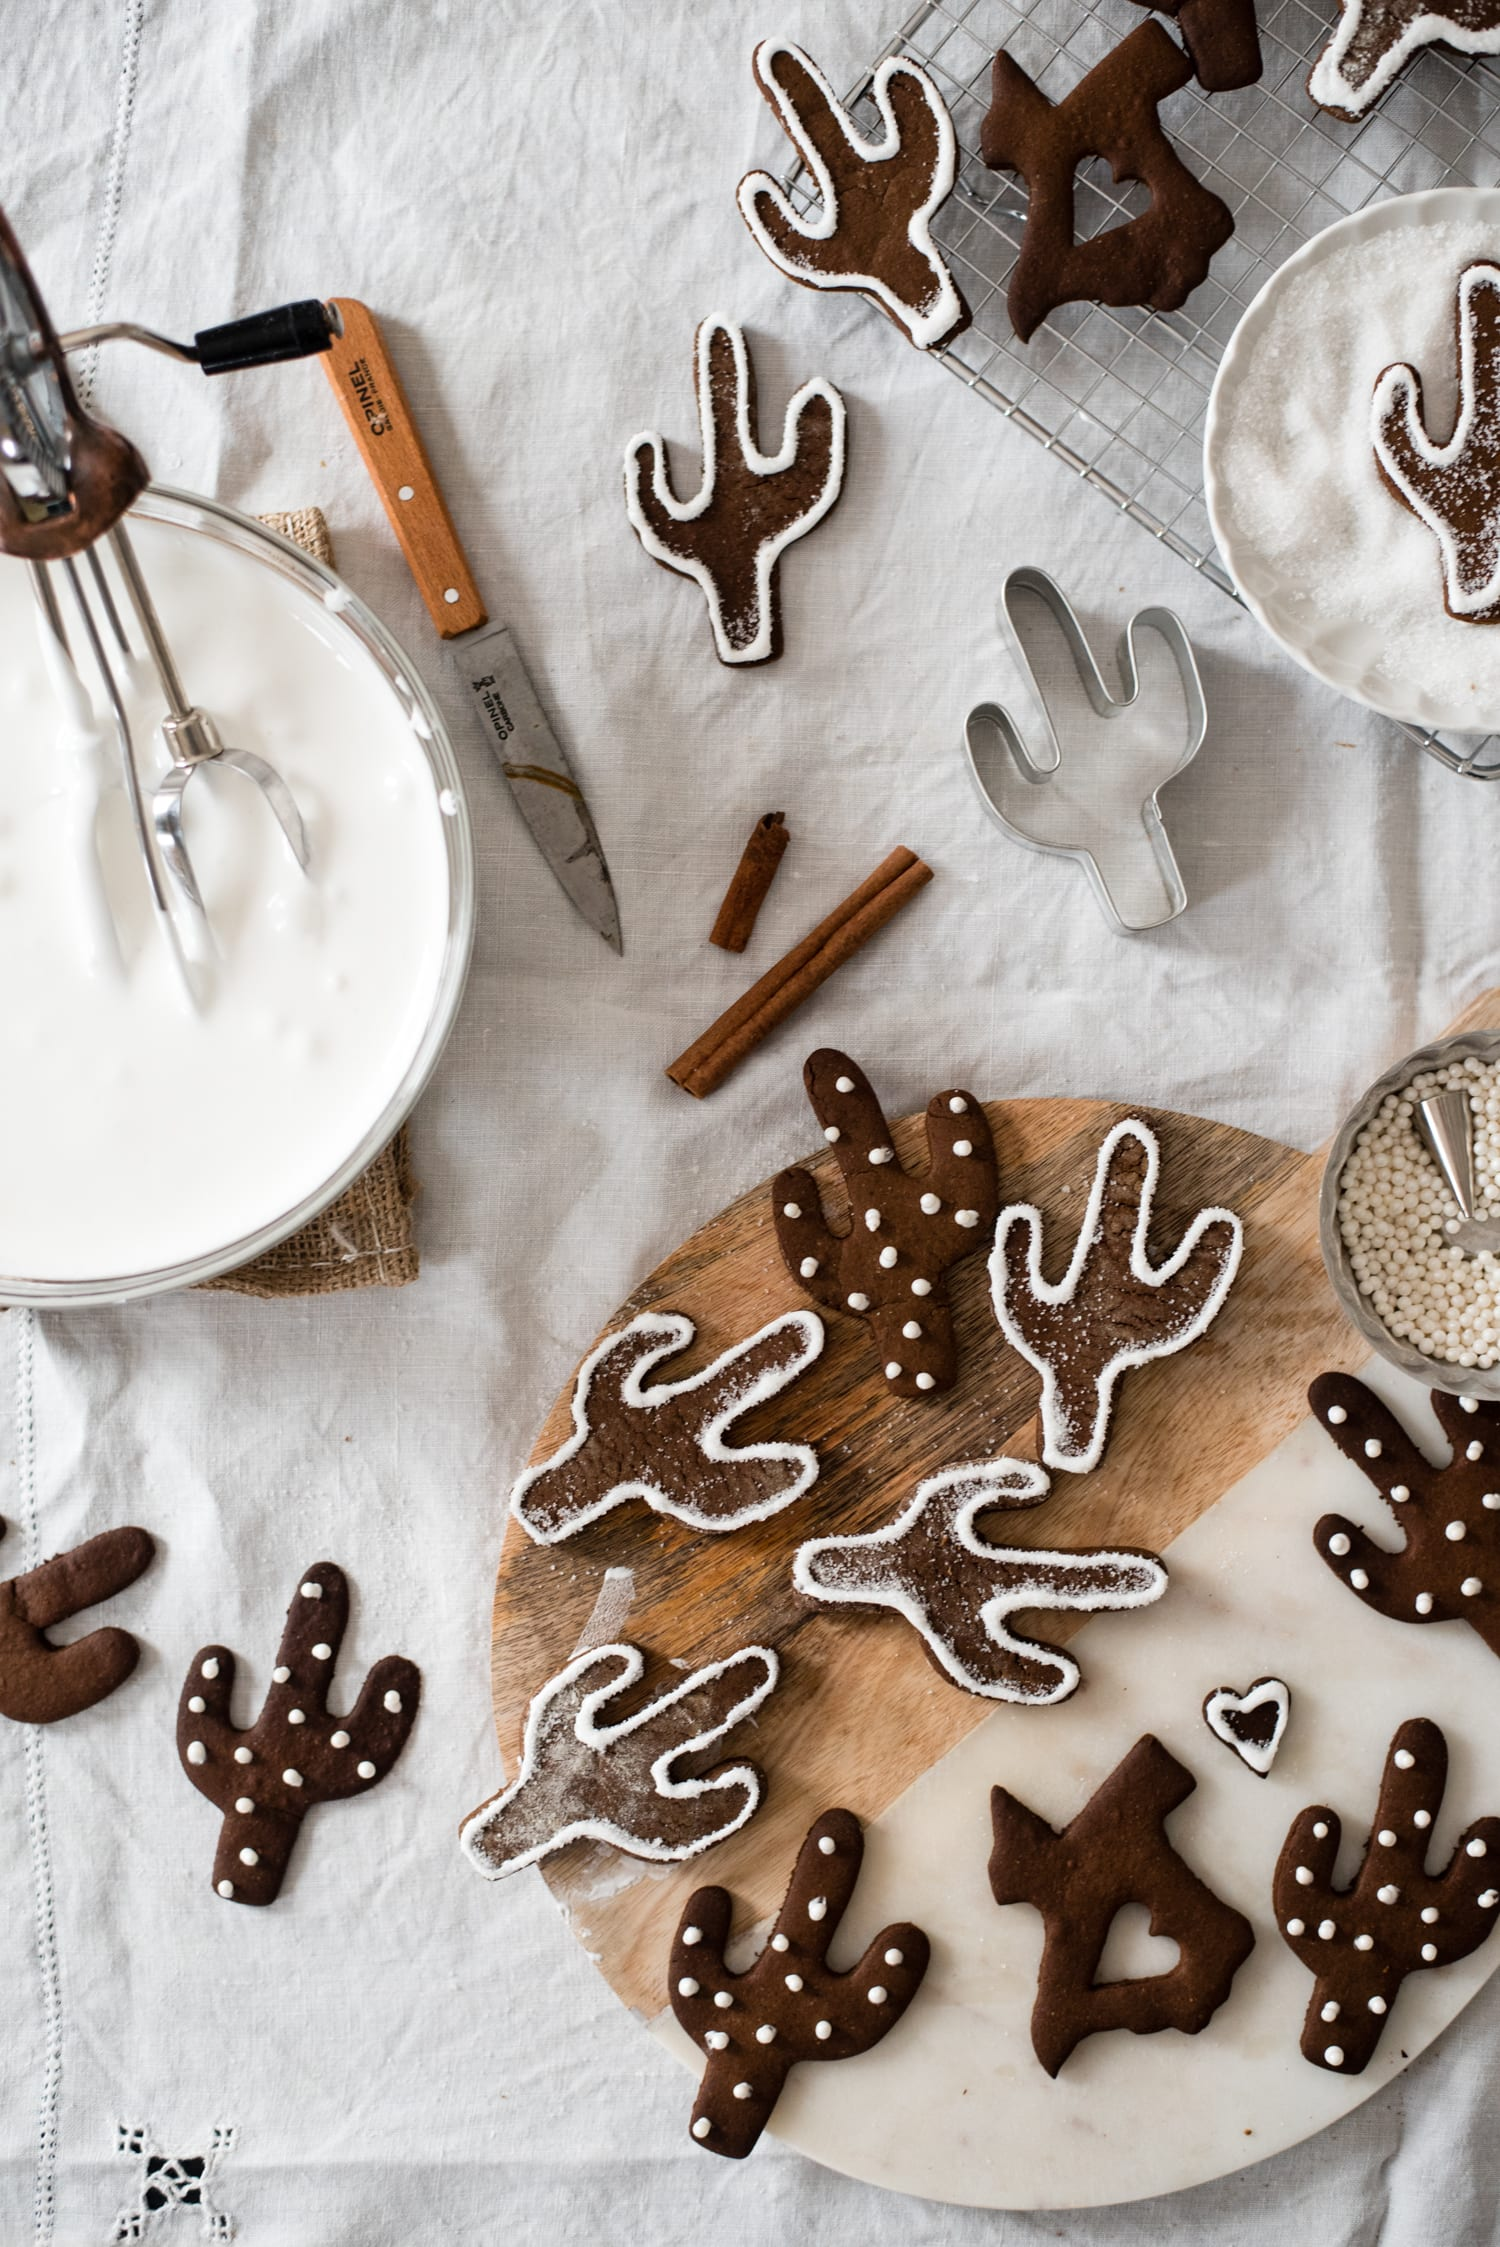 Southwest gingerbread cookies